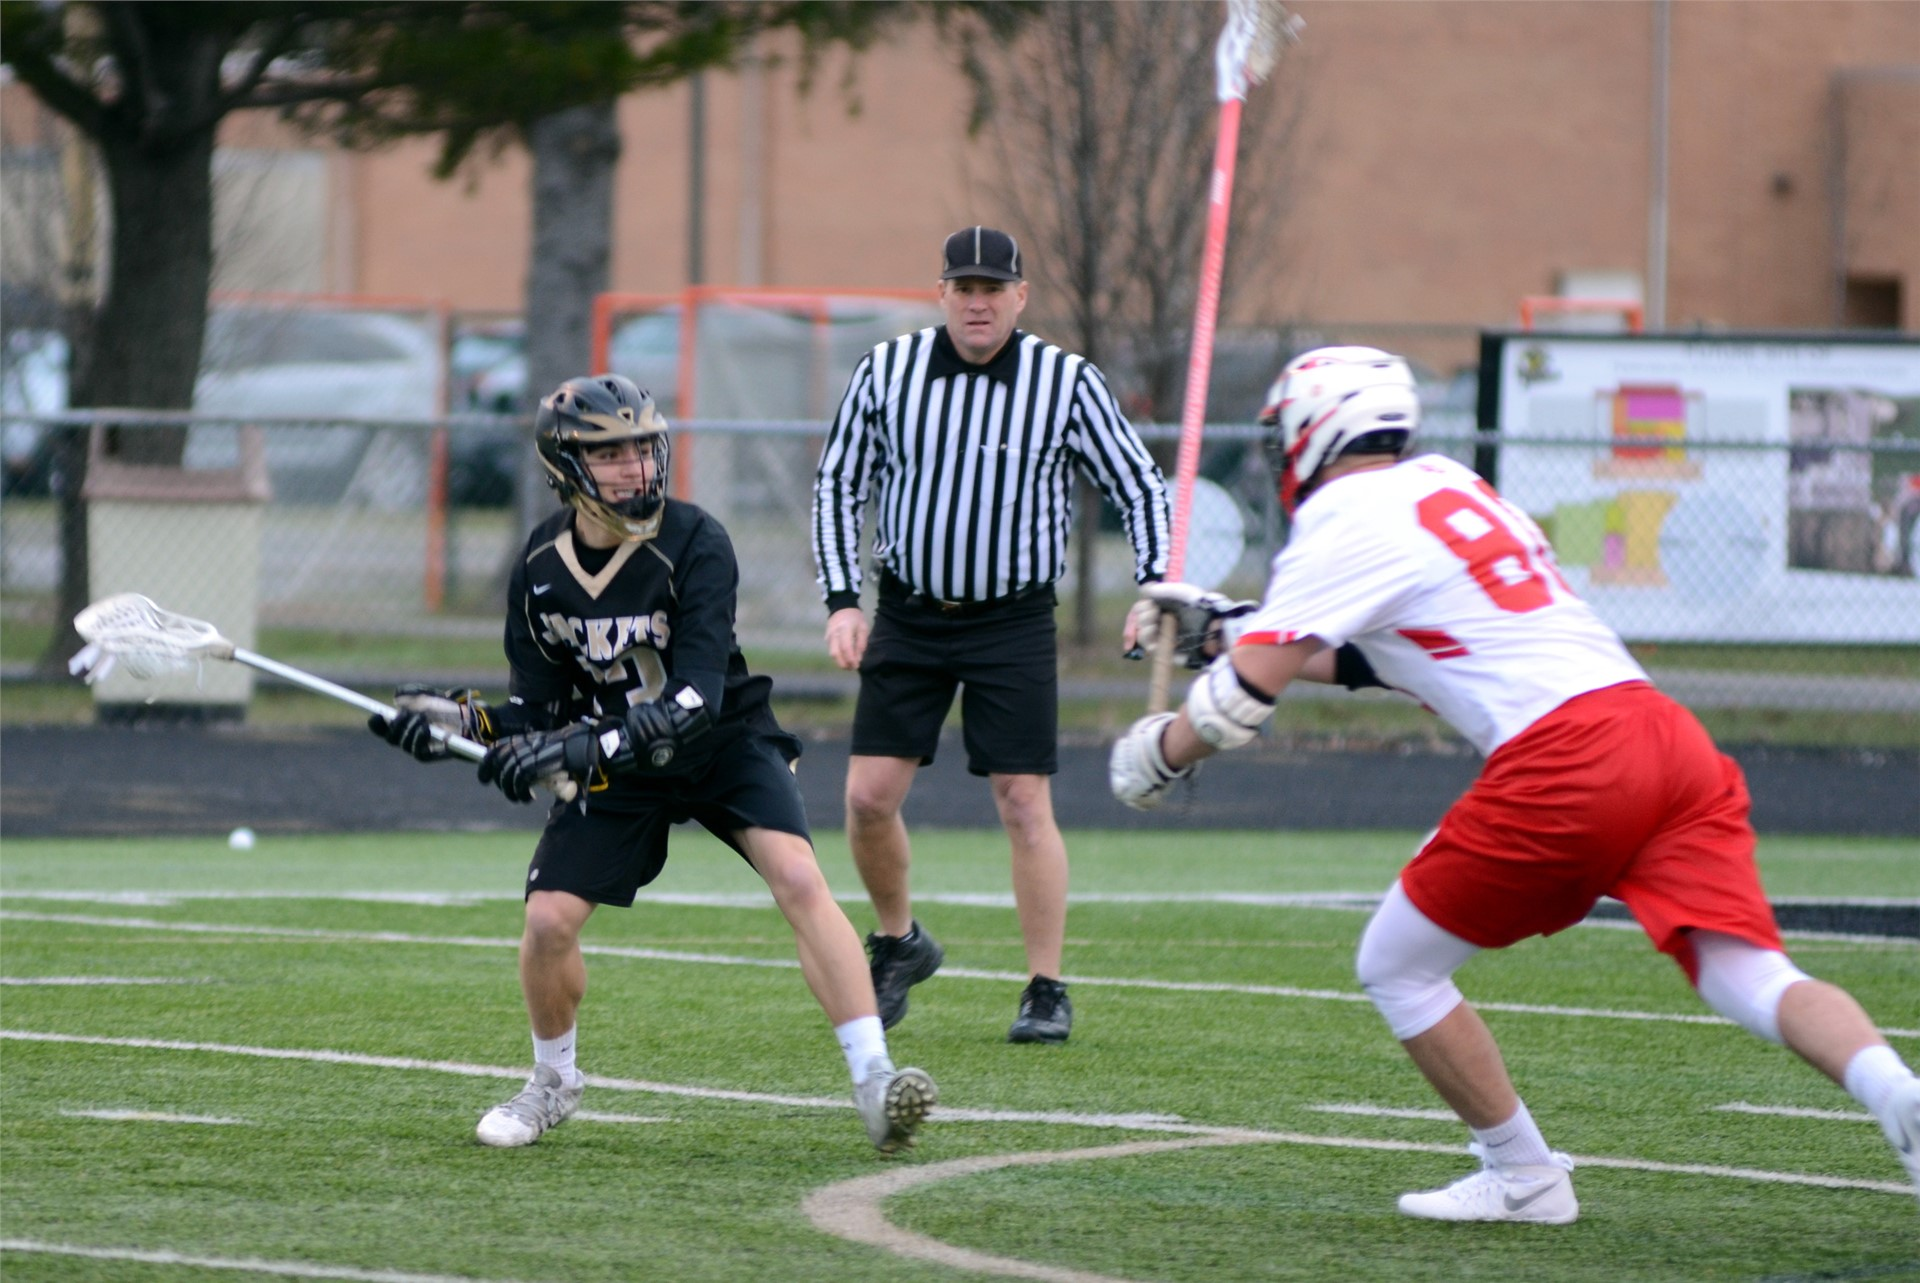 a player from each lacrosse team on the field with a referee in the background